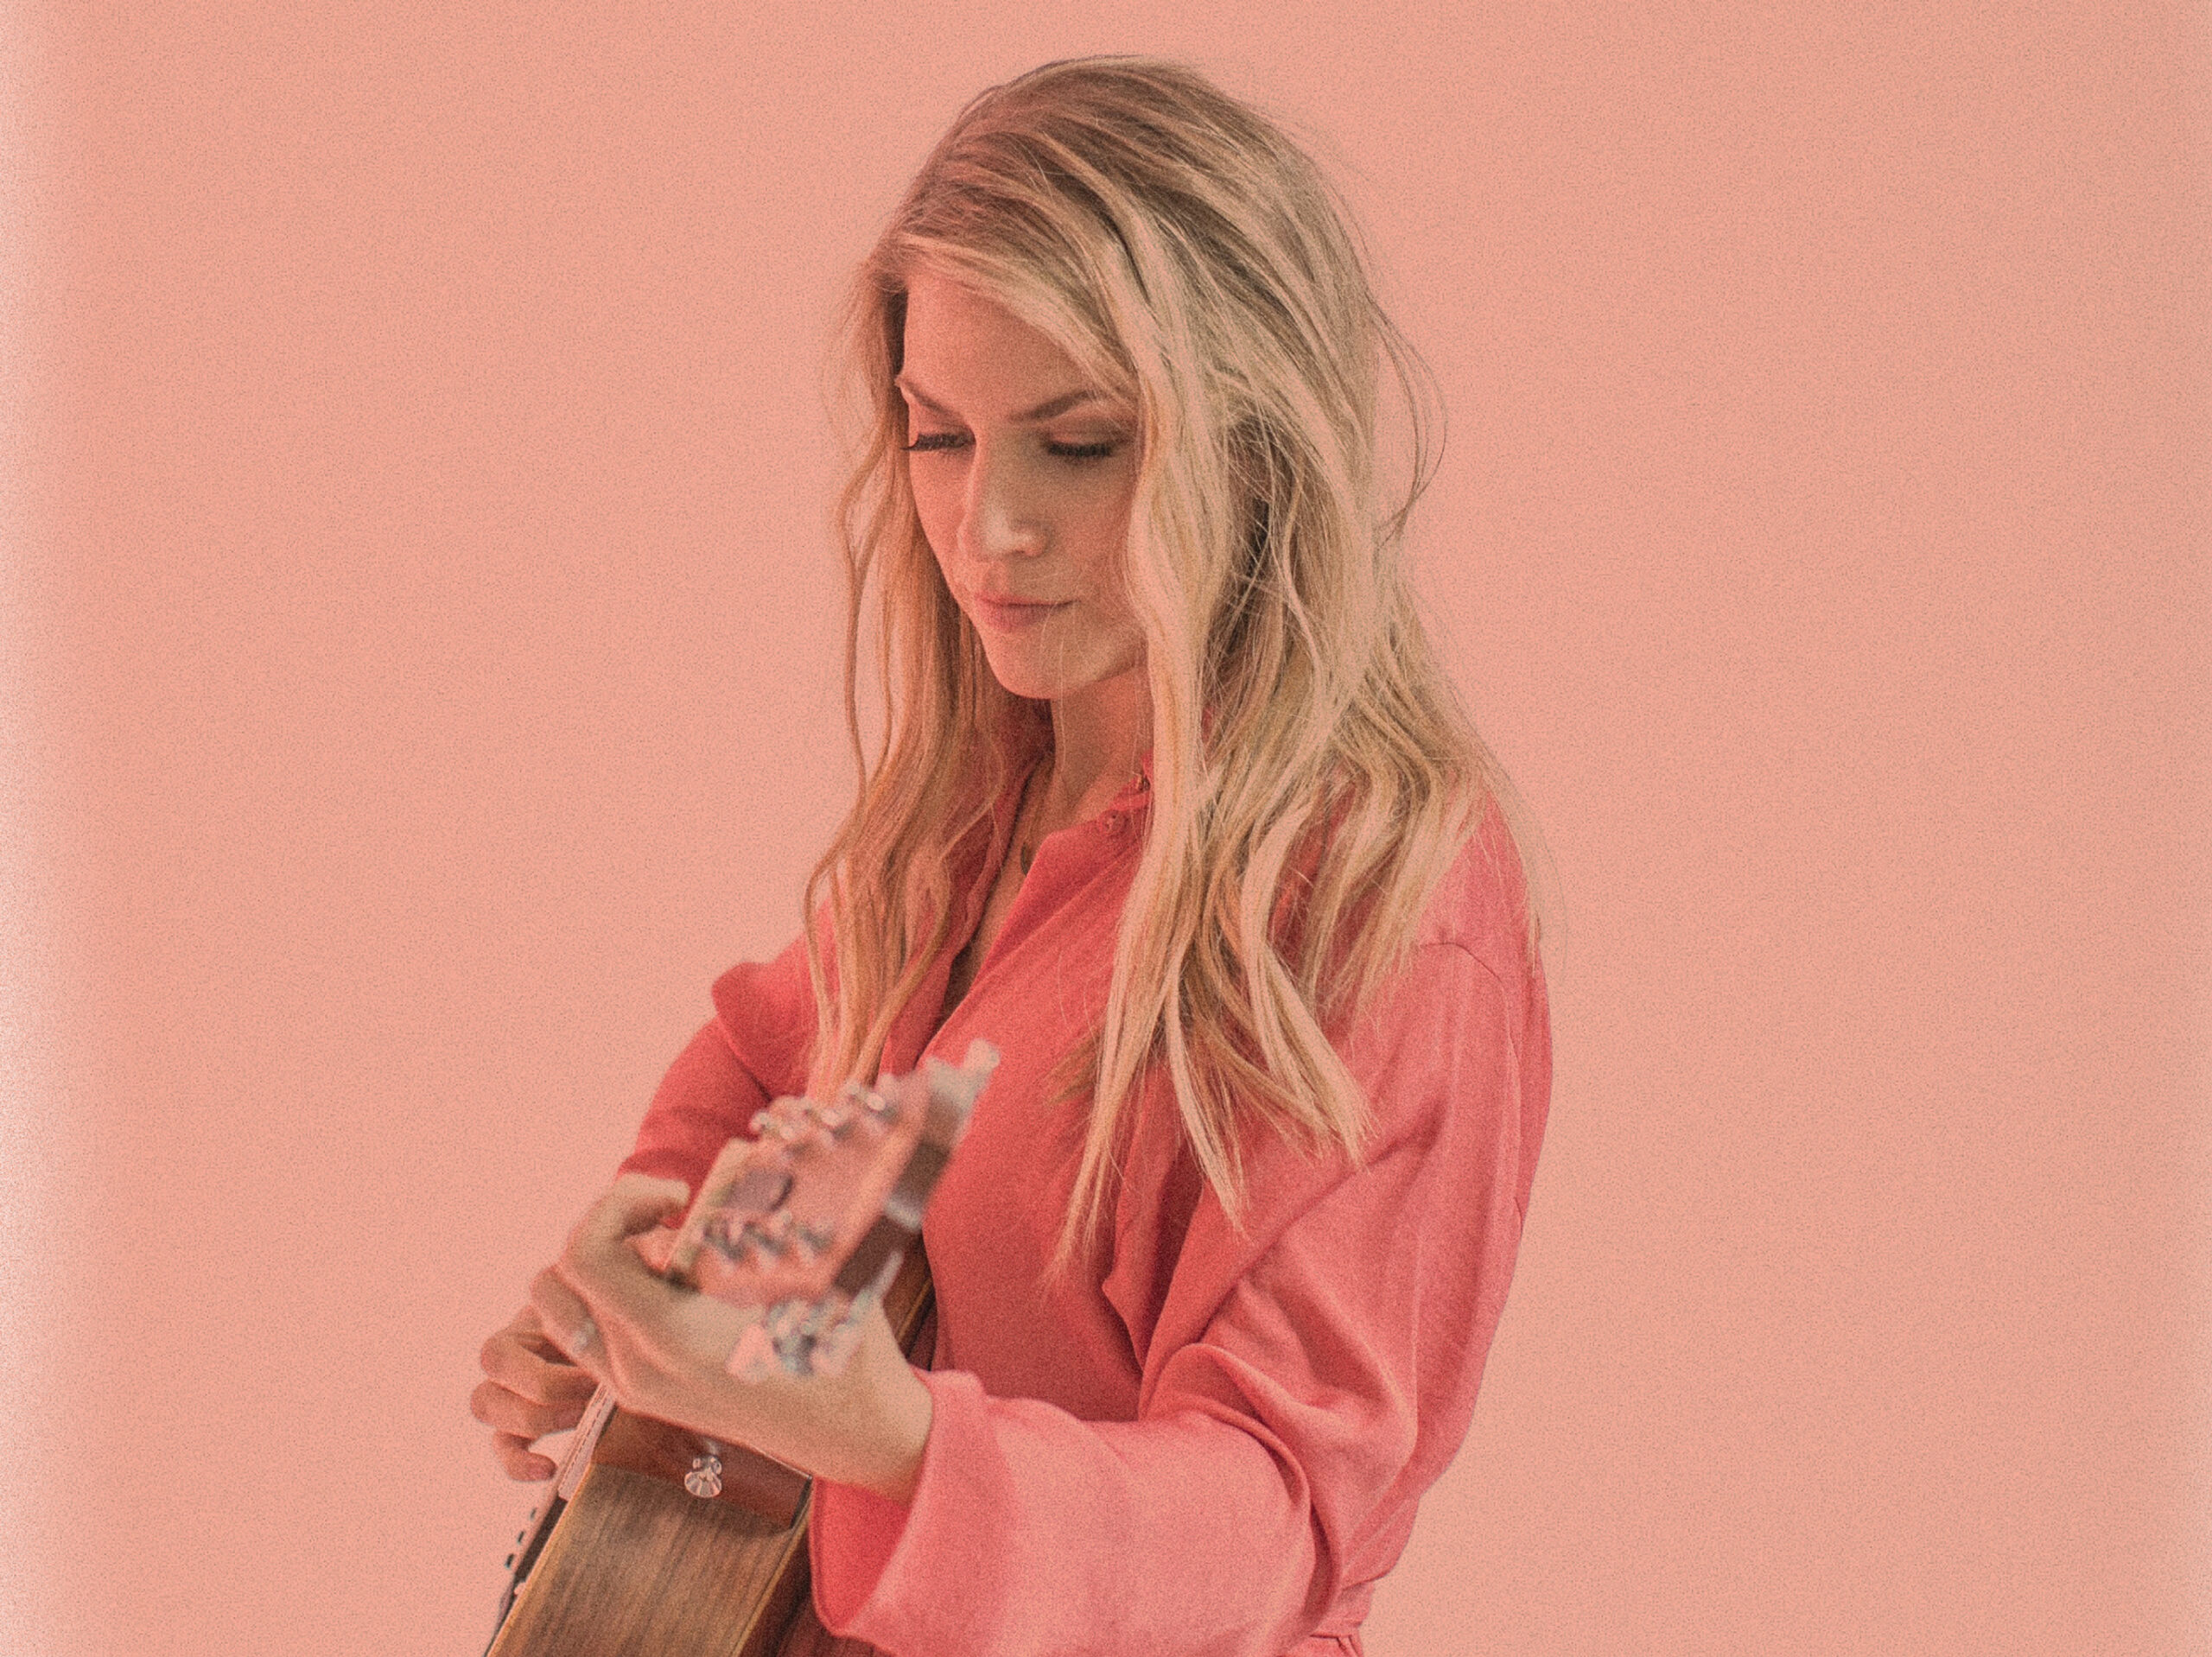 Jillian Edwards, dressed in pink, strums a guitar